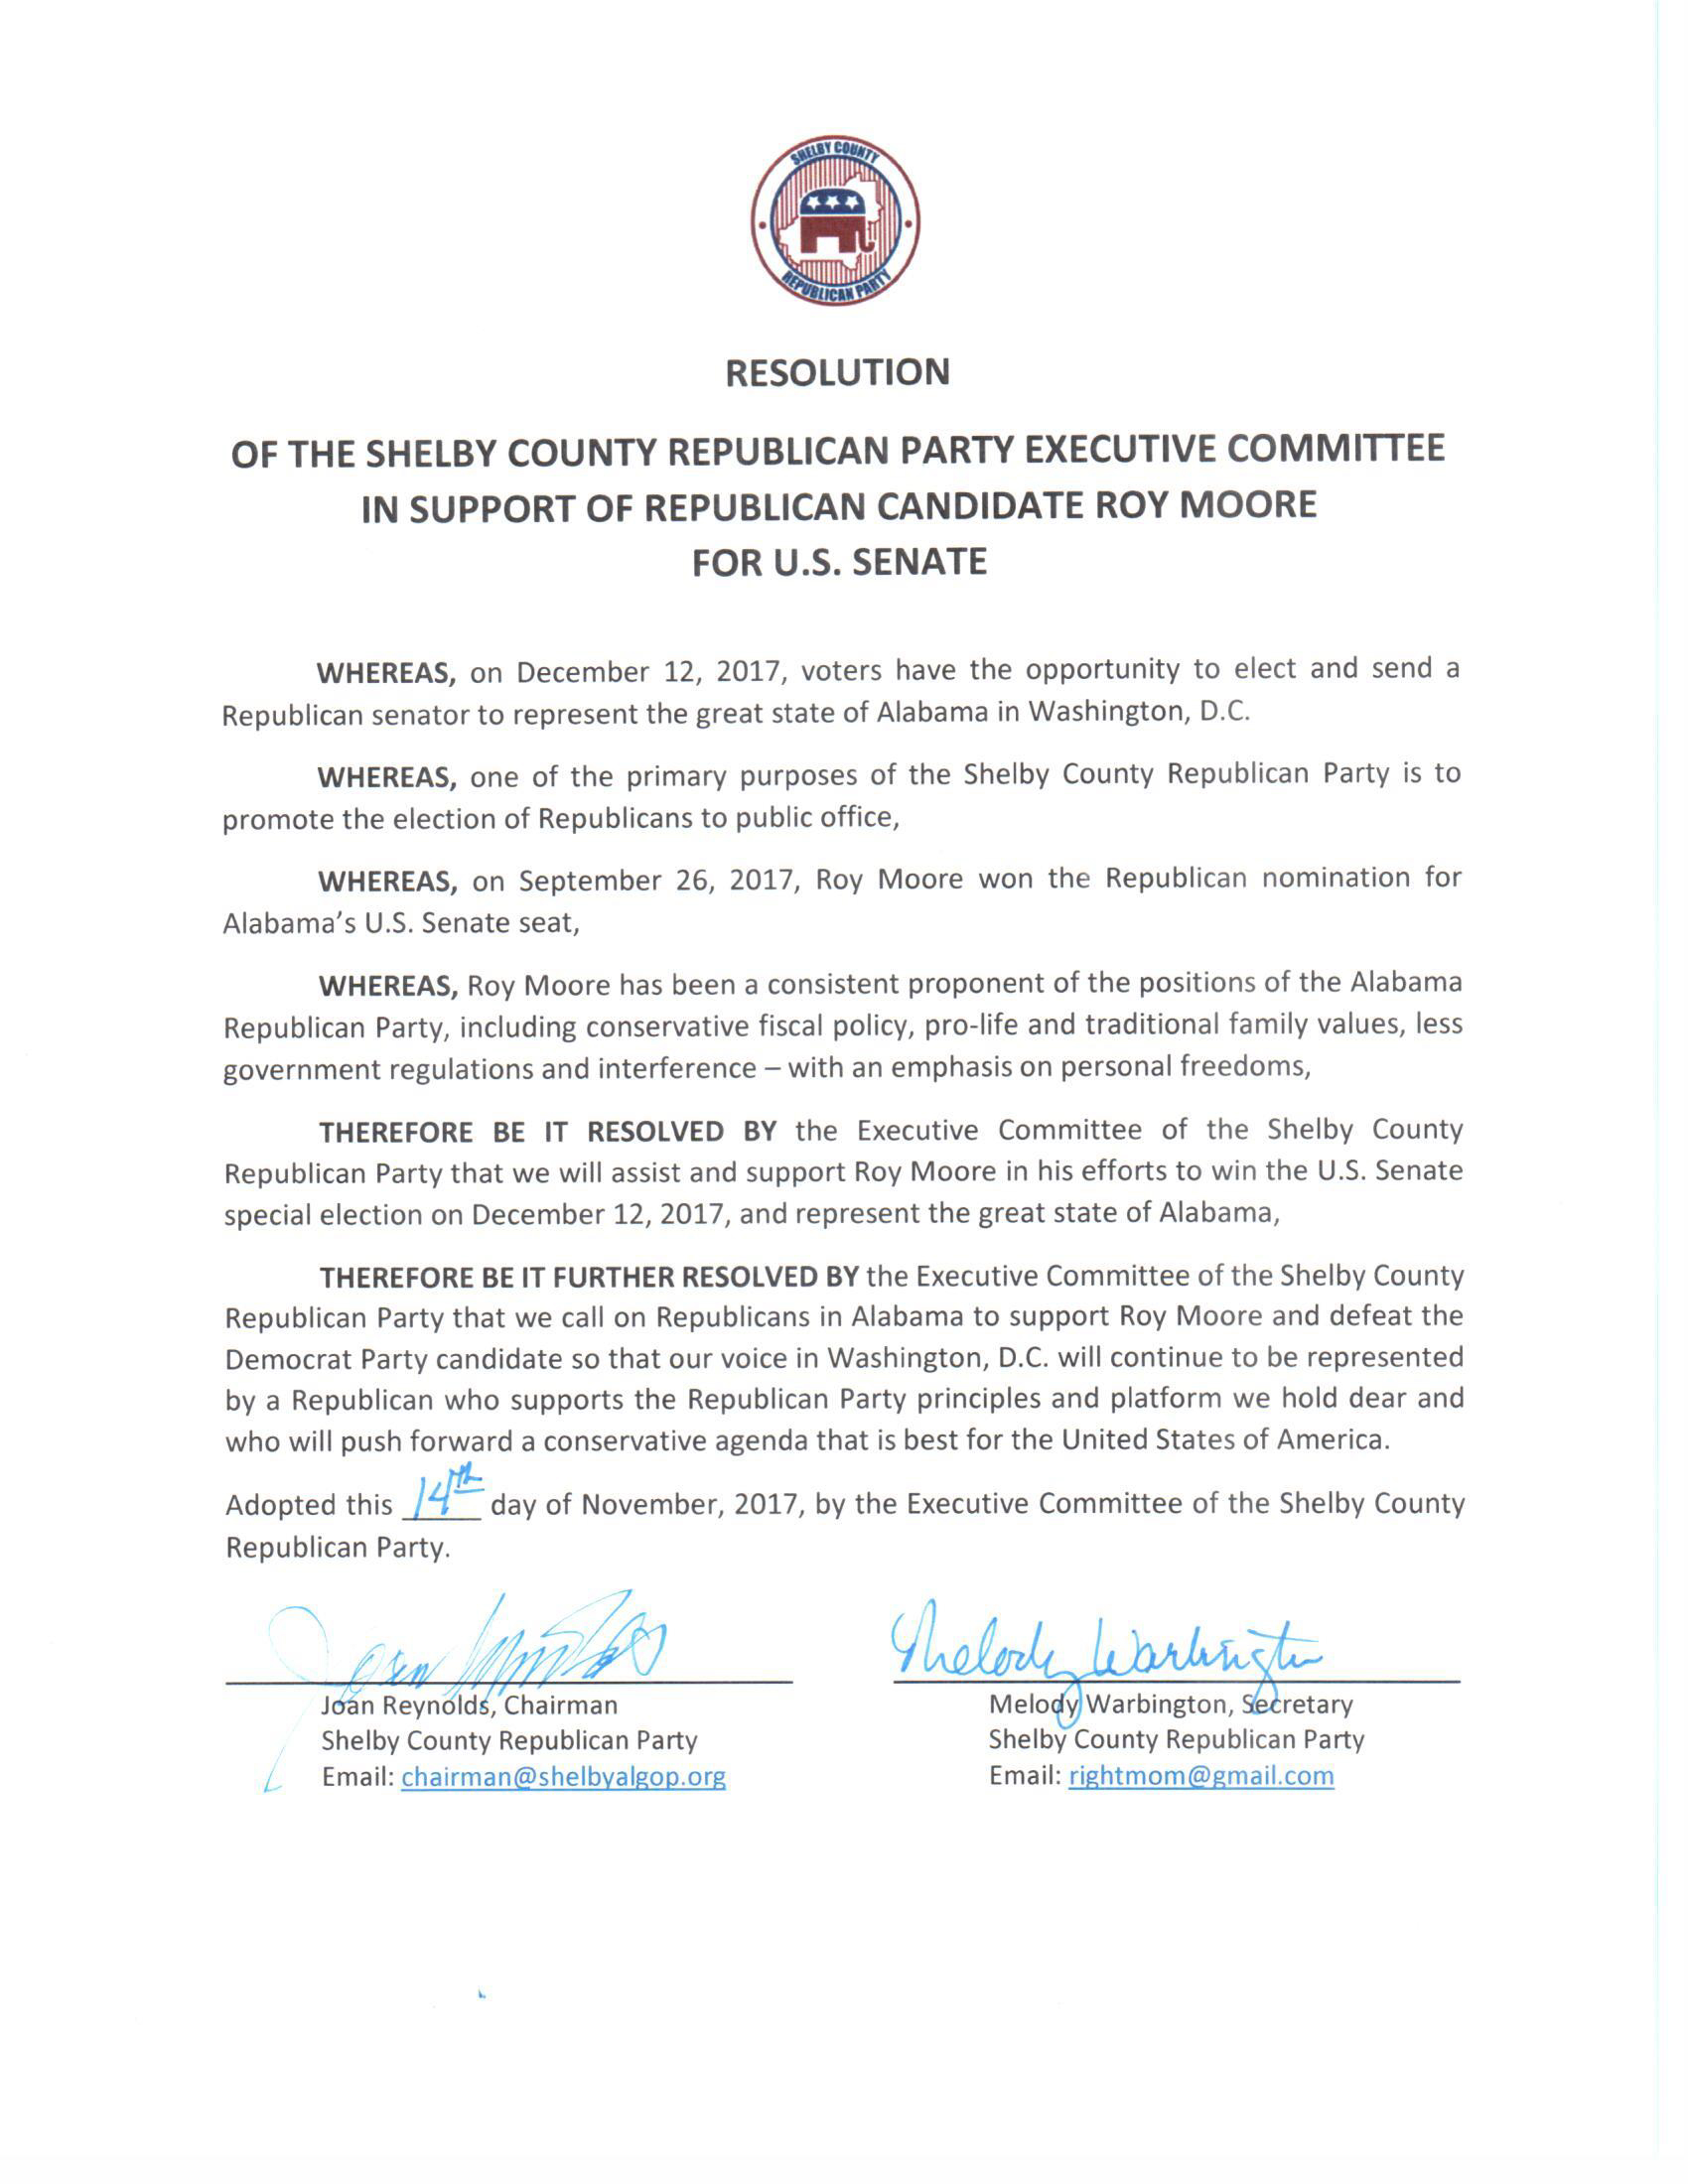 SCGOP Resolution in support of Roy Moore | Shelby County